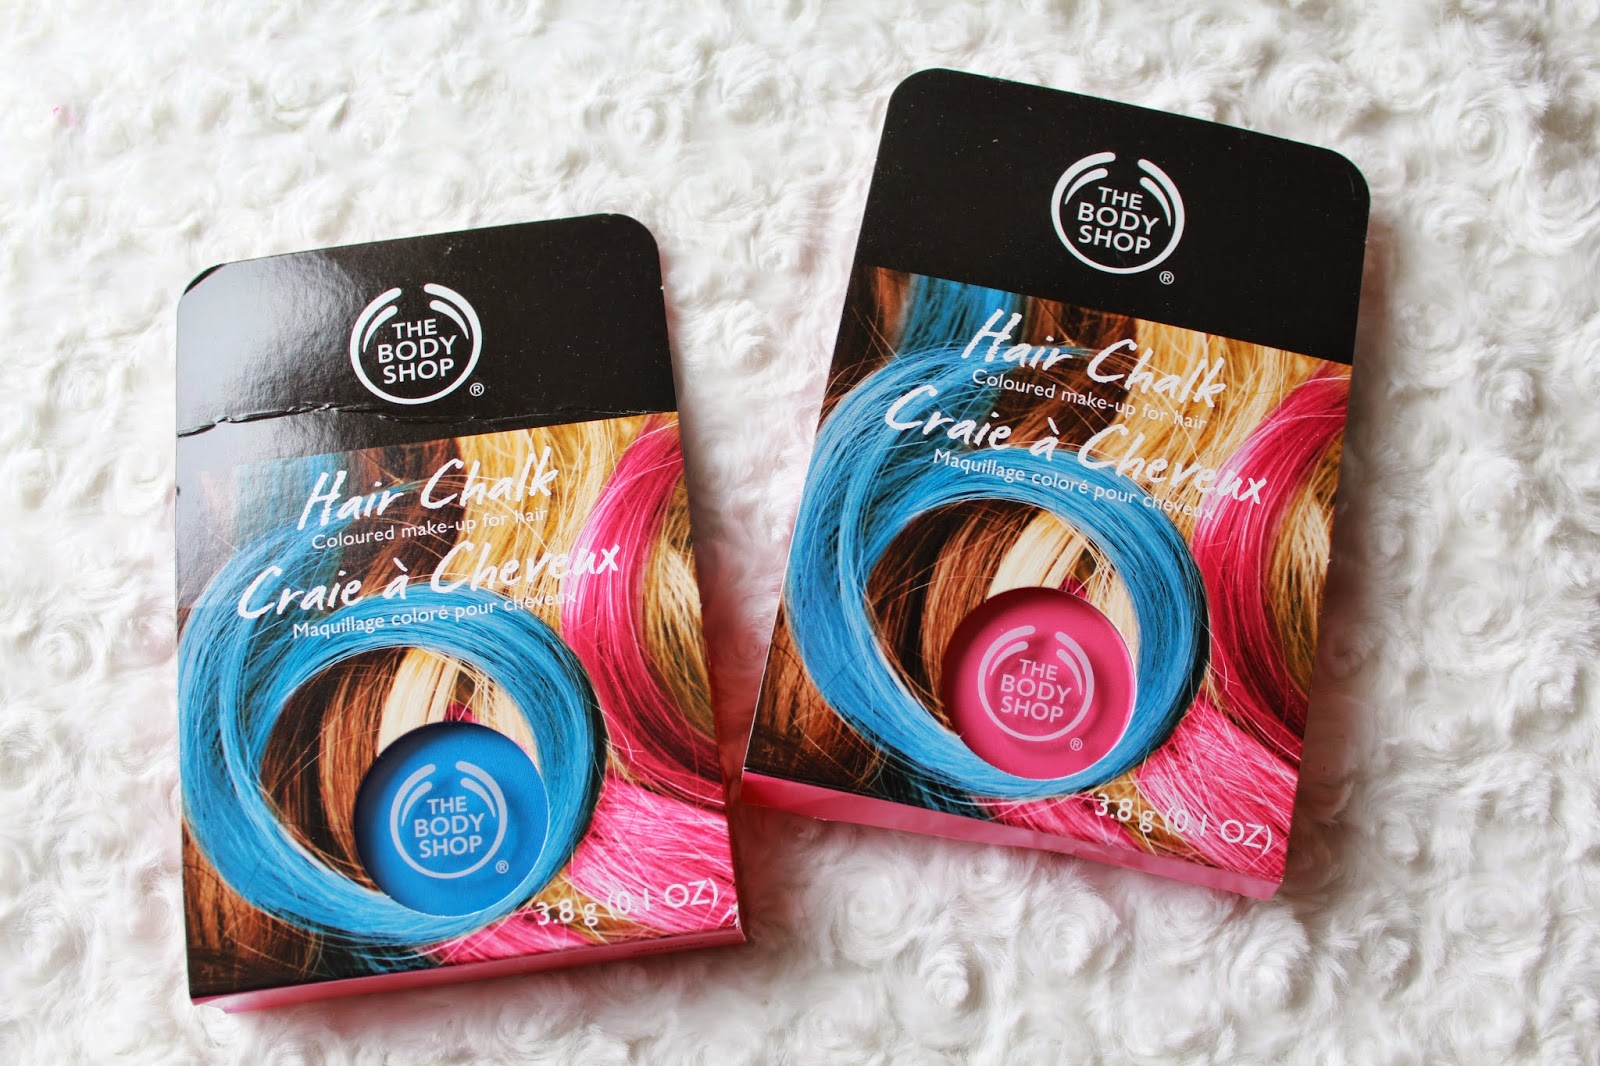 Hair Chalks at The Body Shop